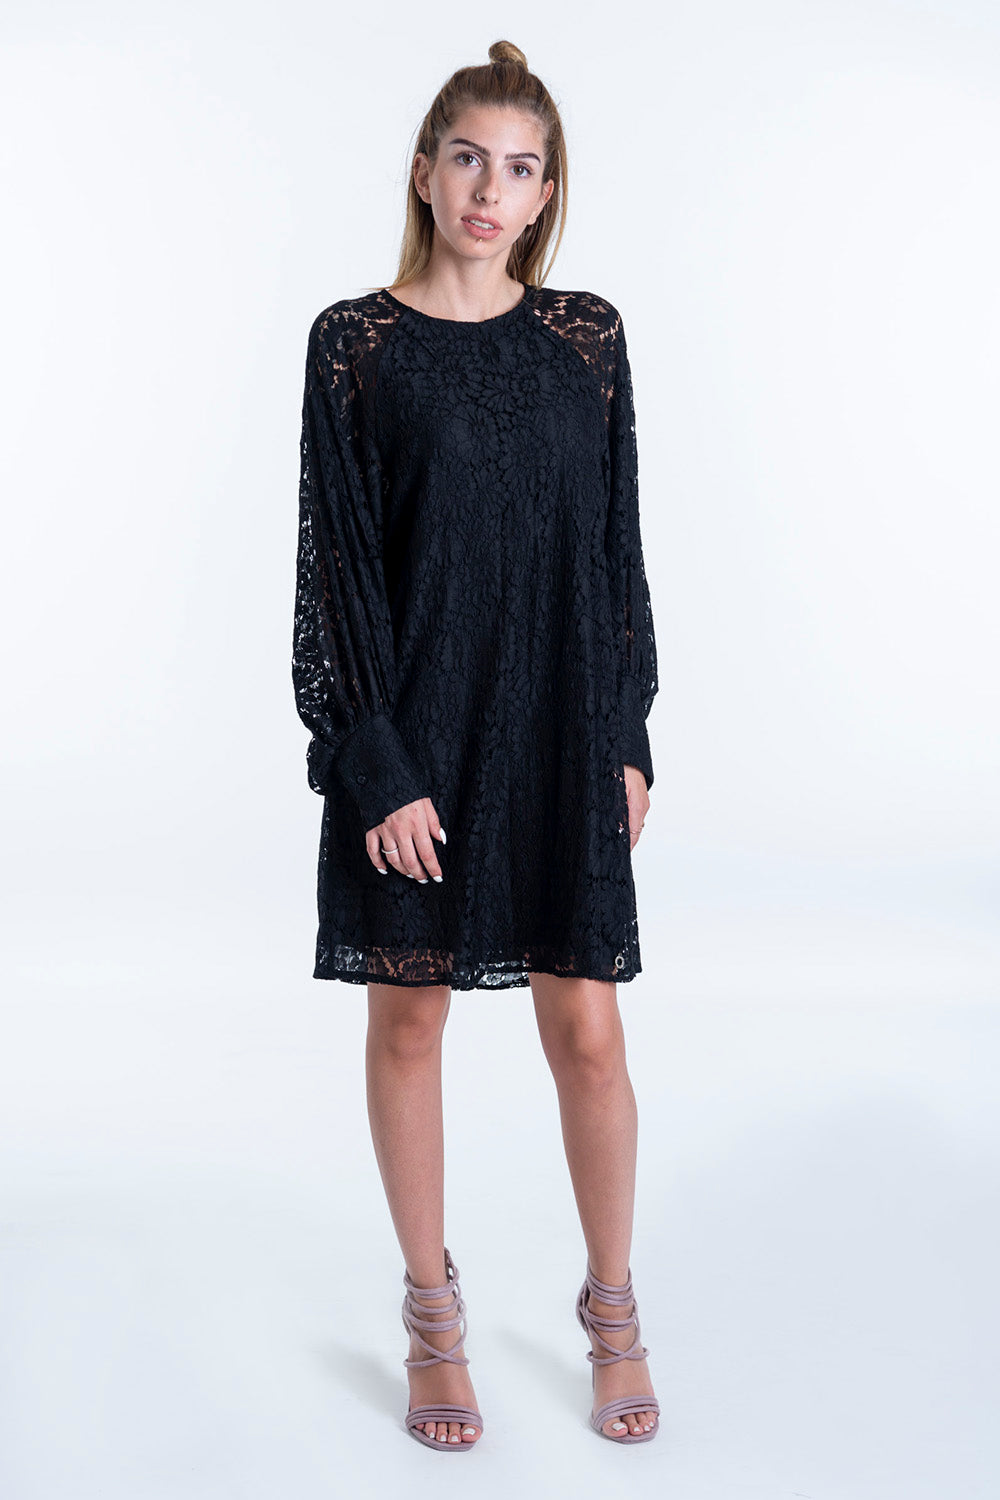 Eco Italy lace dress and extreme bell sleeves